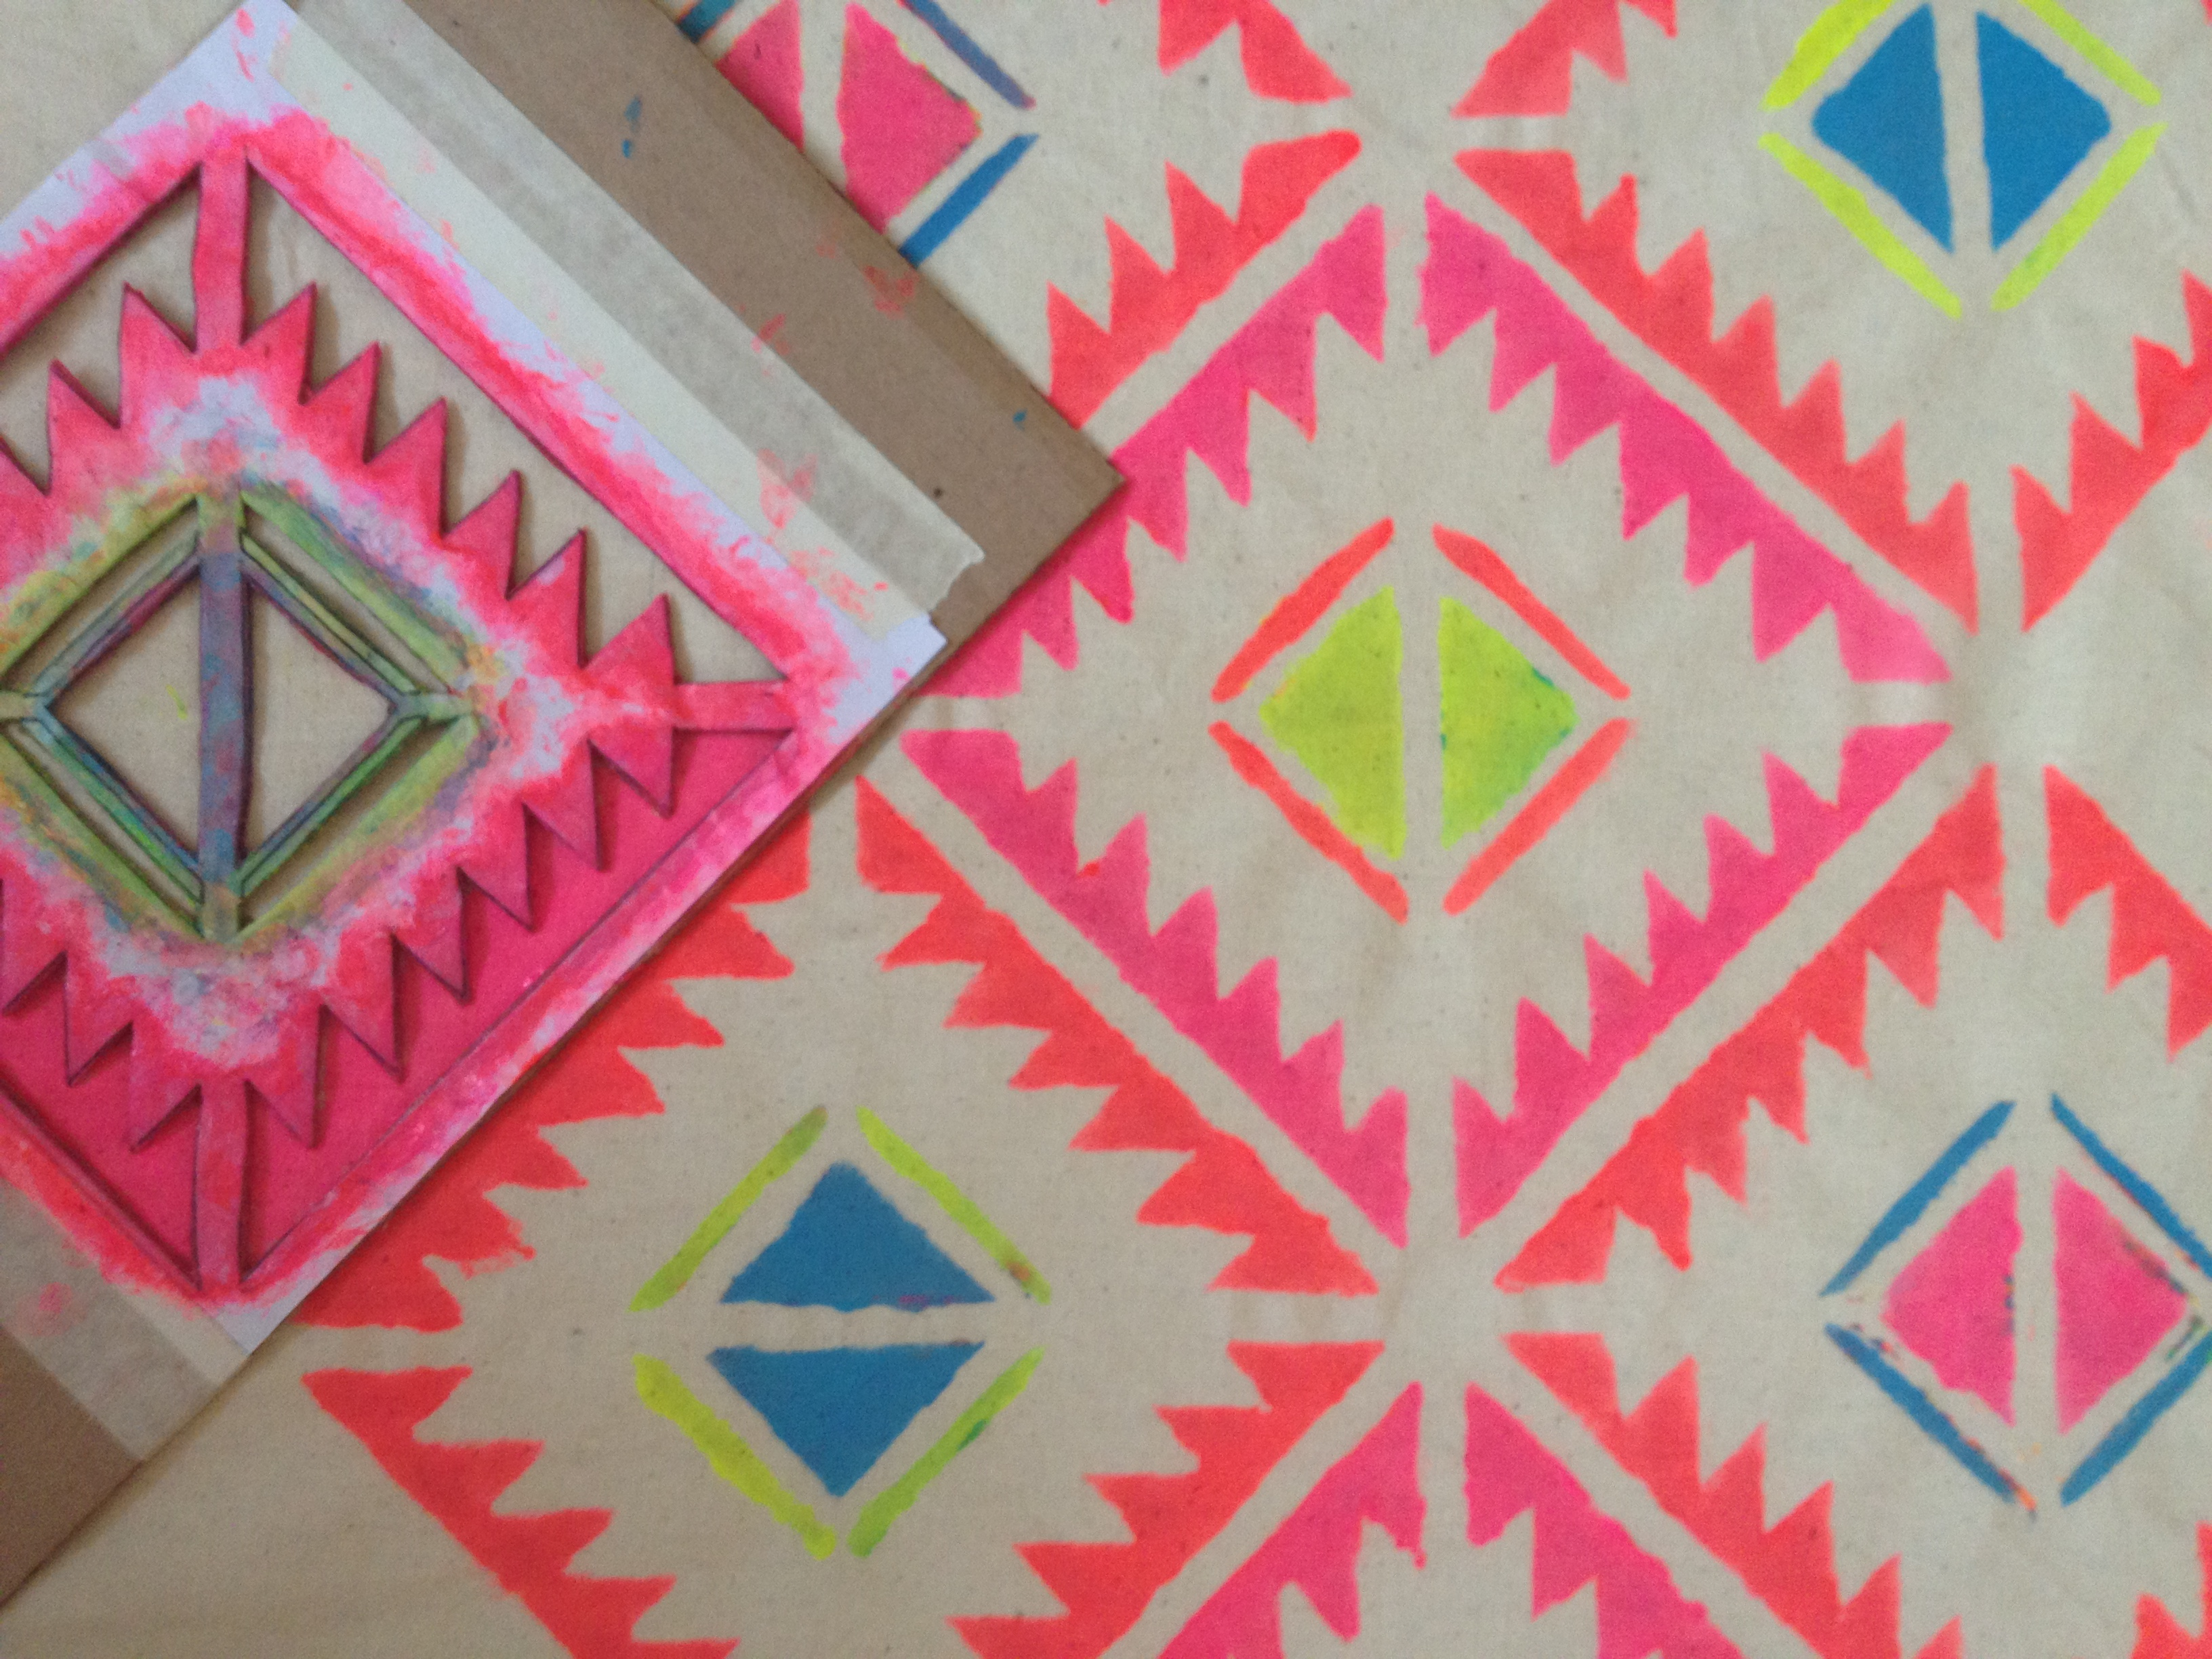 Adventures in fabric painting | By Hand London